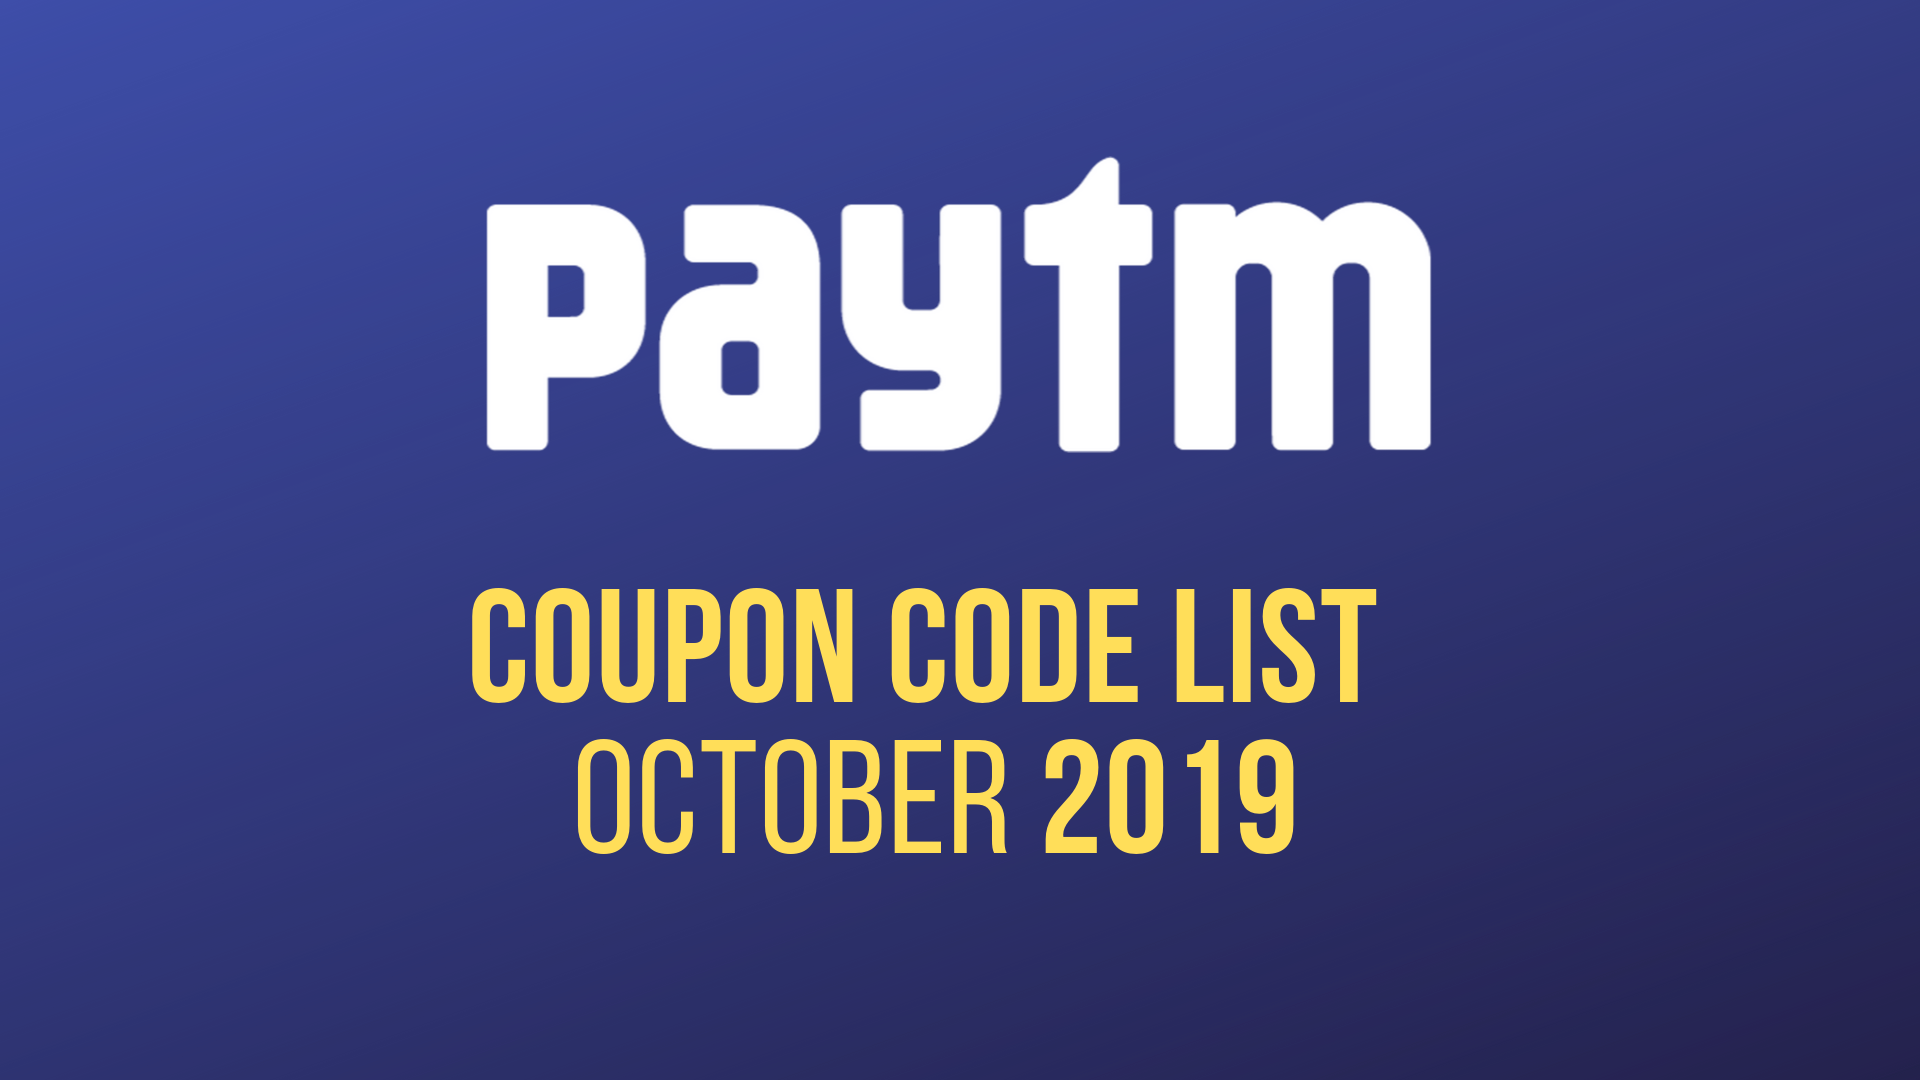 52 Paytm coupon code & promo codes for Oct 12222